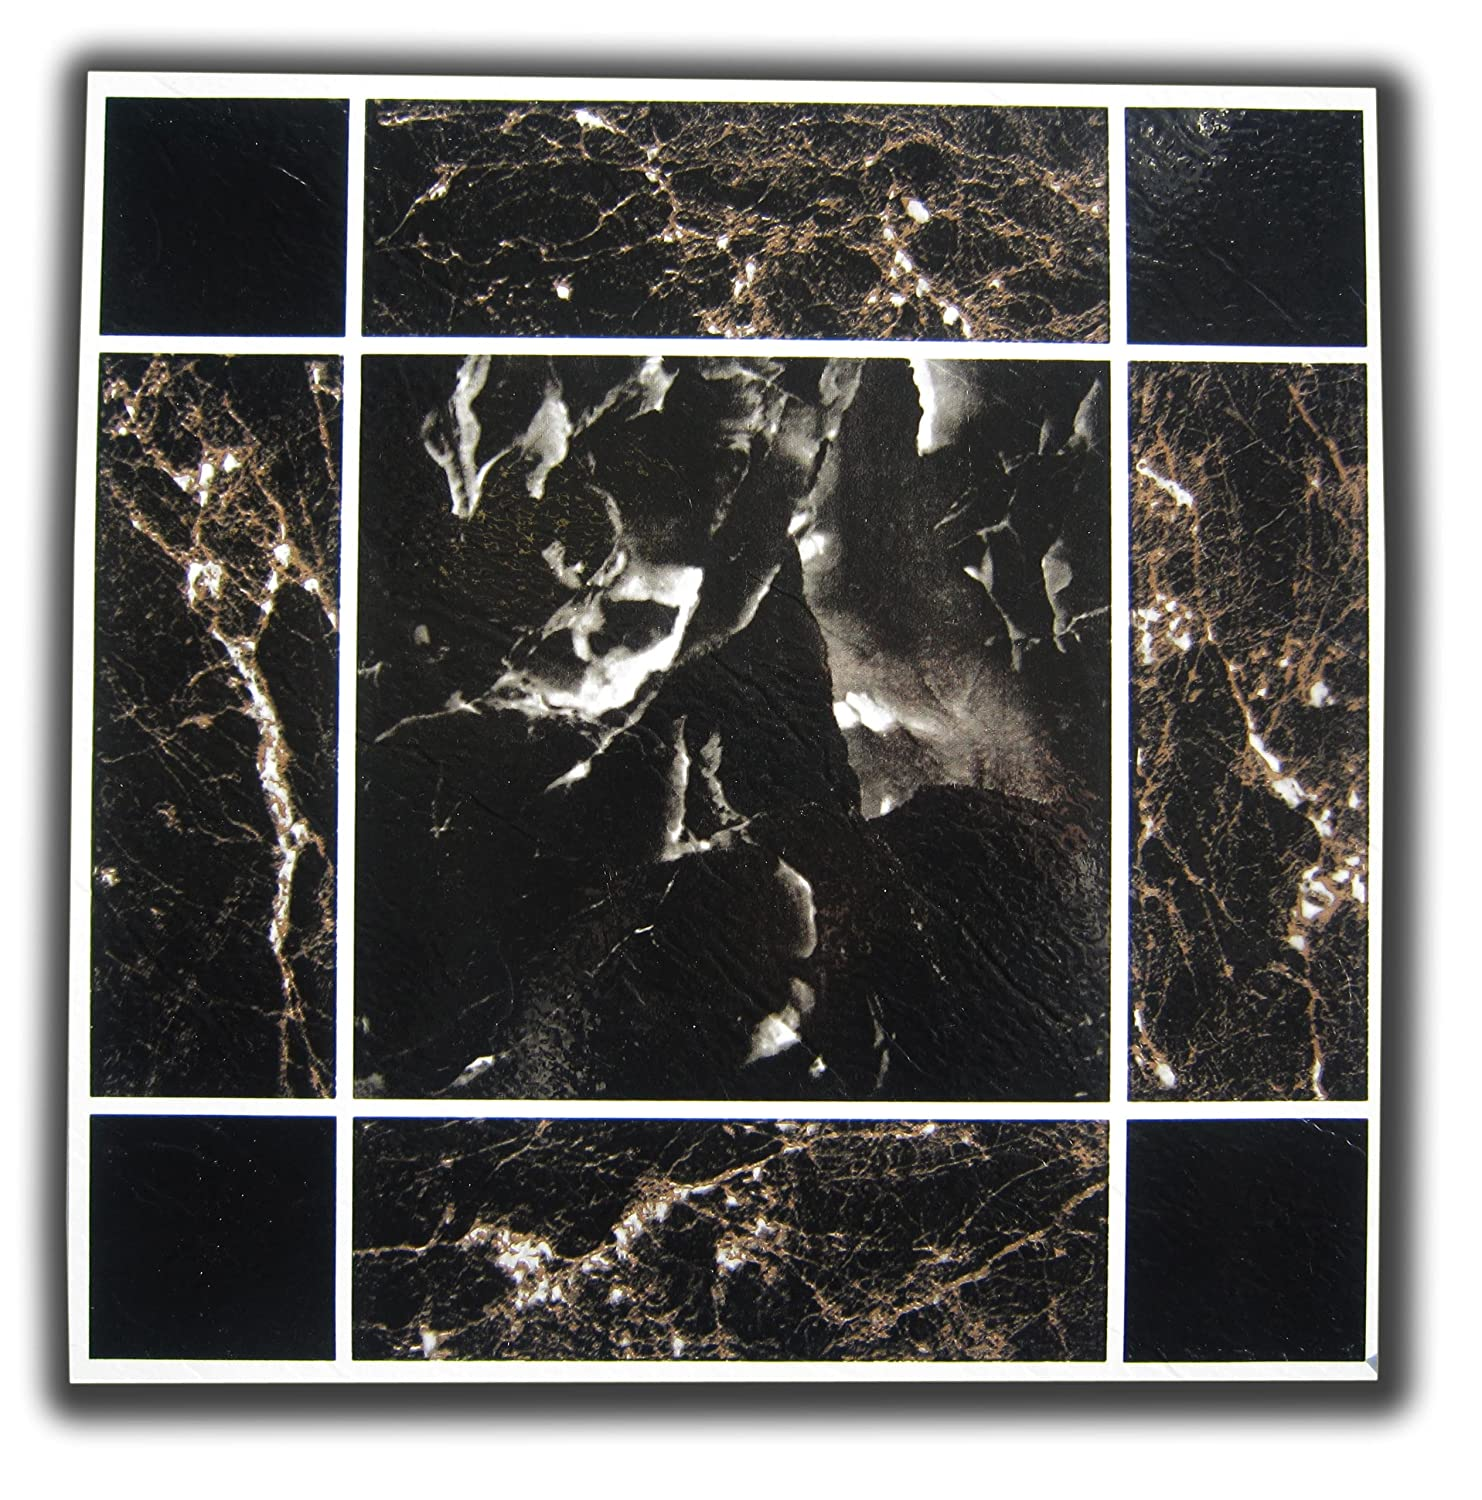 50 vinyl floor tiles blackbrown marble self stick amazon 50 vinyl floor tiles blackbrown marble self stick amazon diy tools dailygadgetfo Choice Image